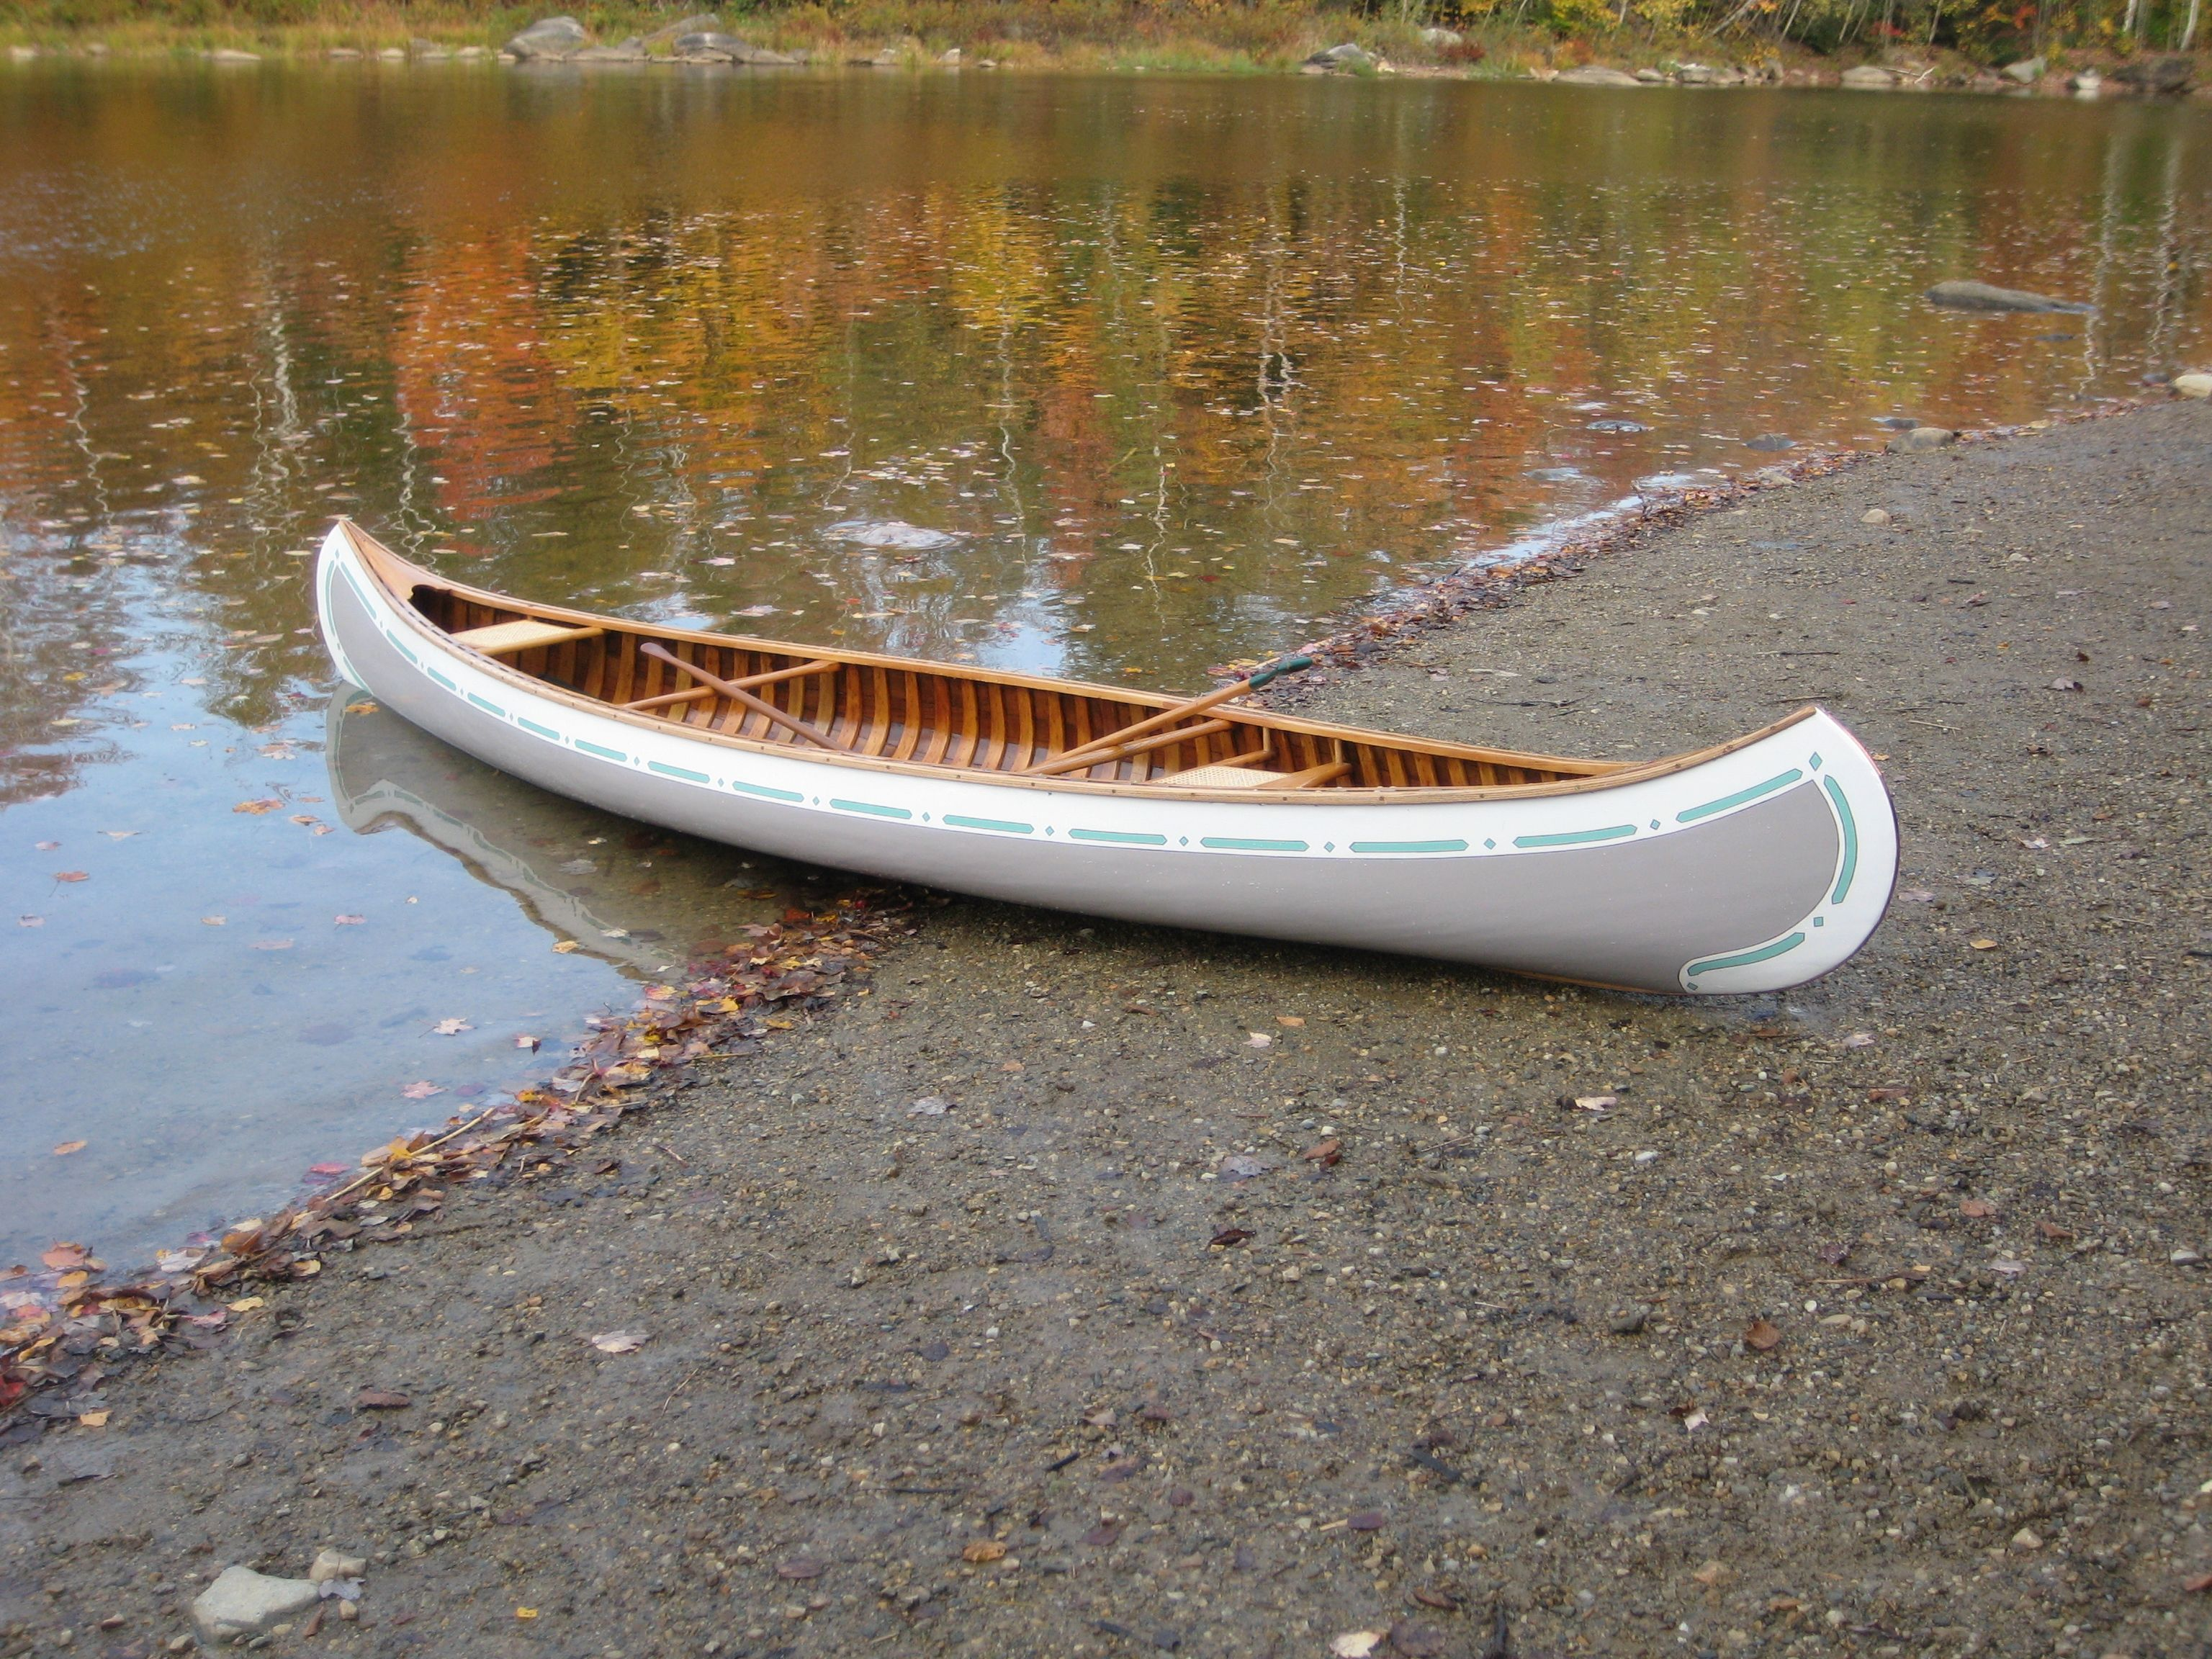 A Gallery Of Sampling Vintage Wooden Canoe And Boat Restorations That Have Been Completed By Ralph Nimtz In Wallinford Vermont